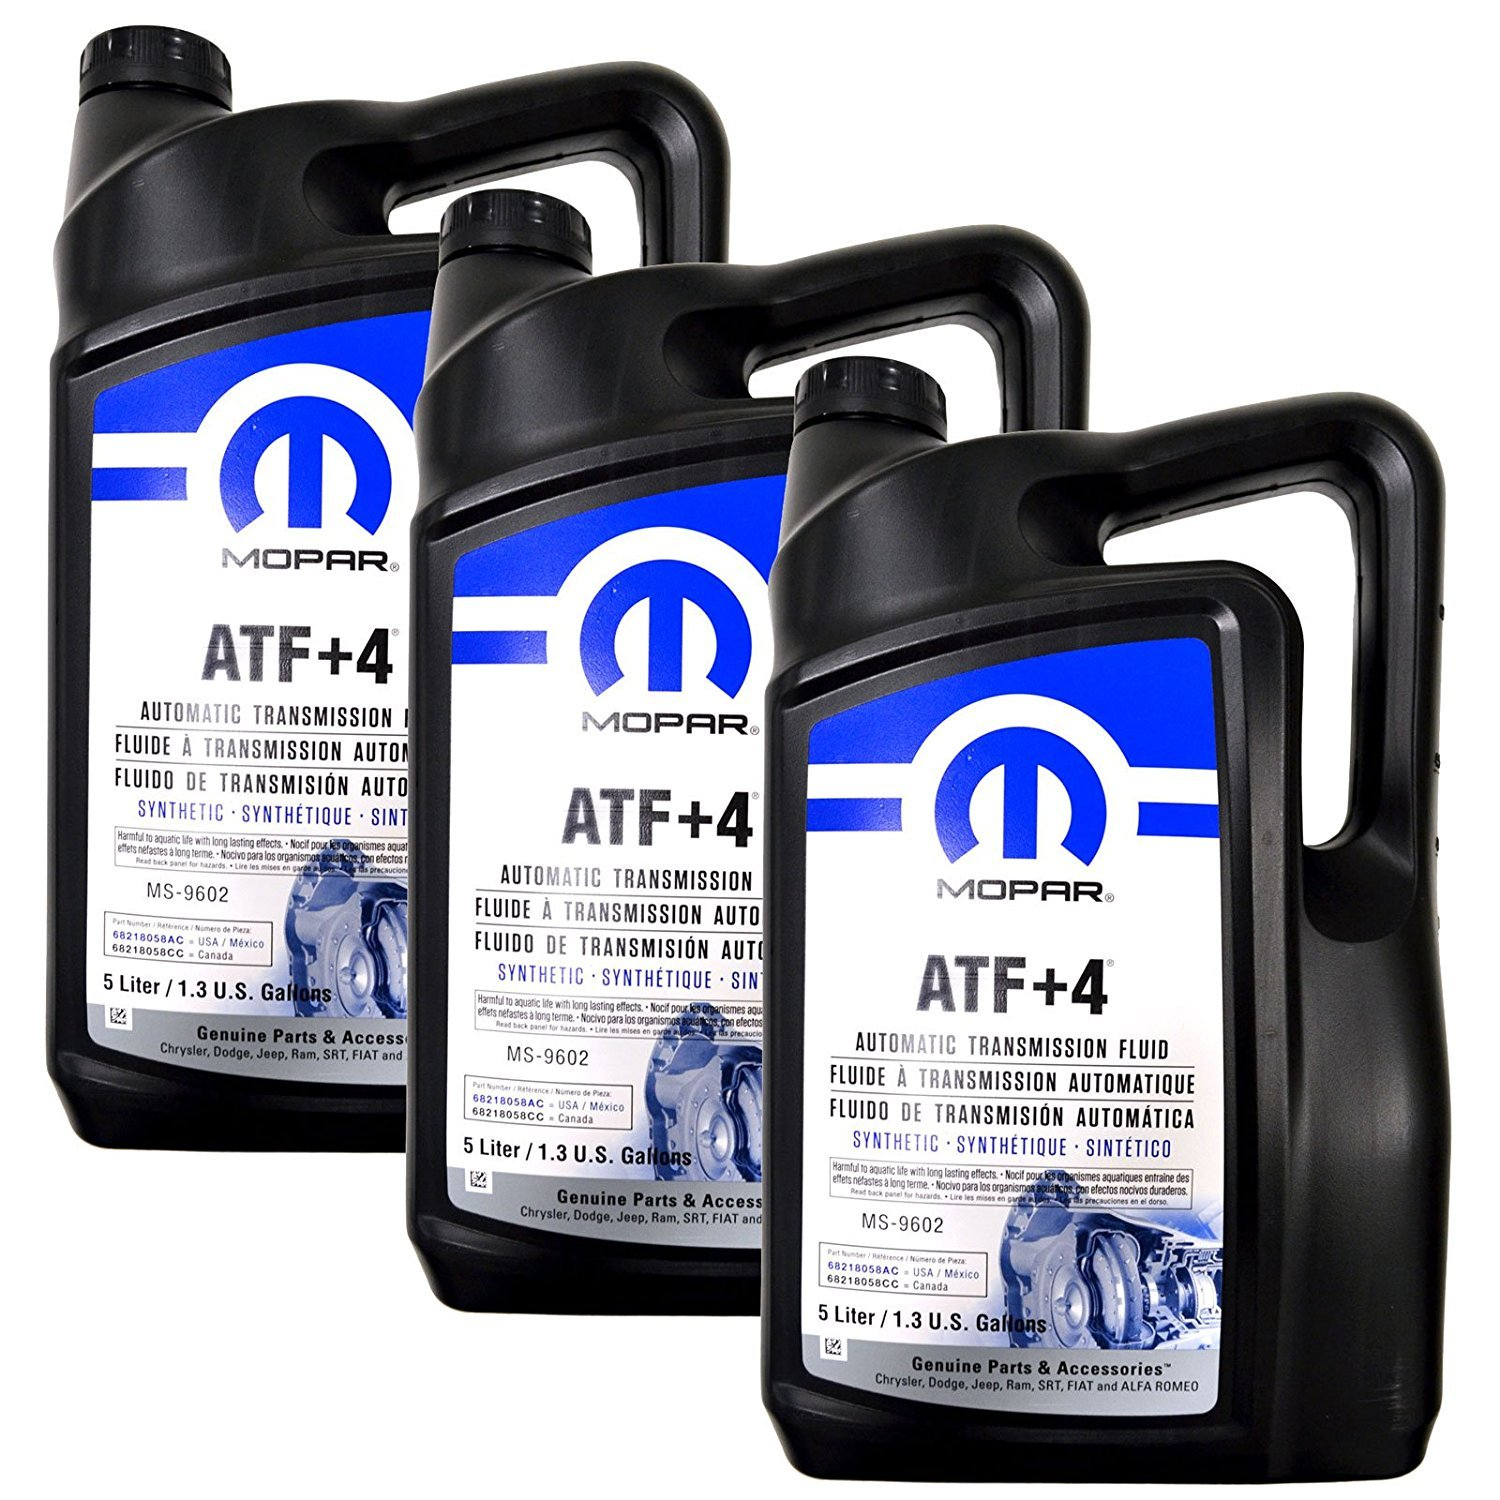 Mopar Automatic Transmission Fluid ATF+4 - 5 Liter (1.3 Gallon) 3 Pack